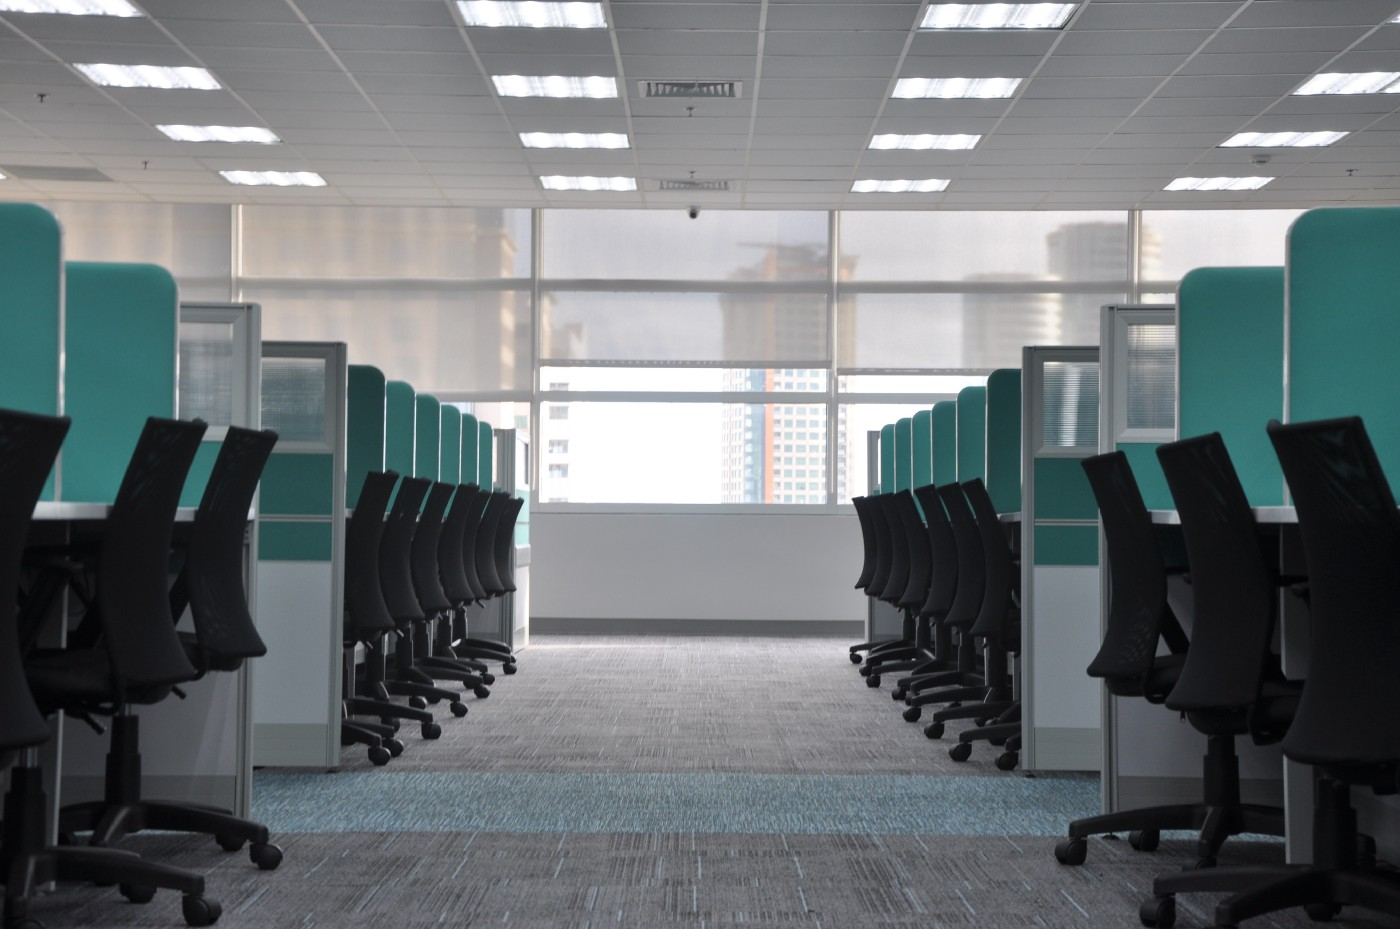 Two rows of turquoise walled cubicles with roller chairs tucked underneath. A narrow aisle leading to a window separates them.